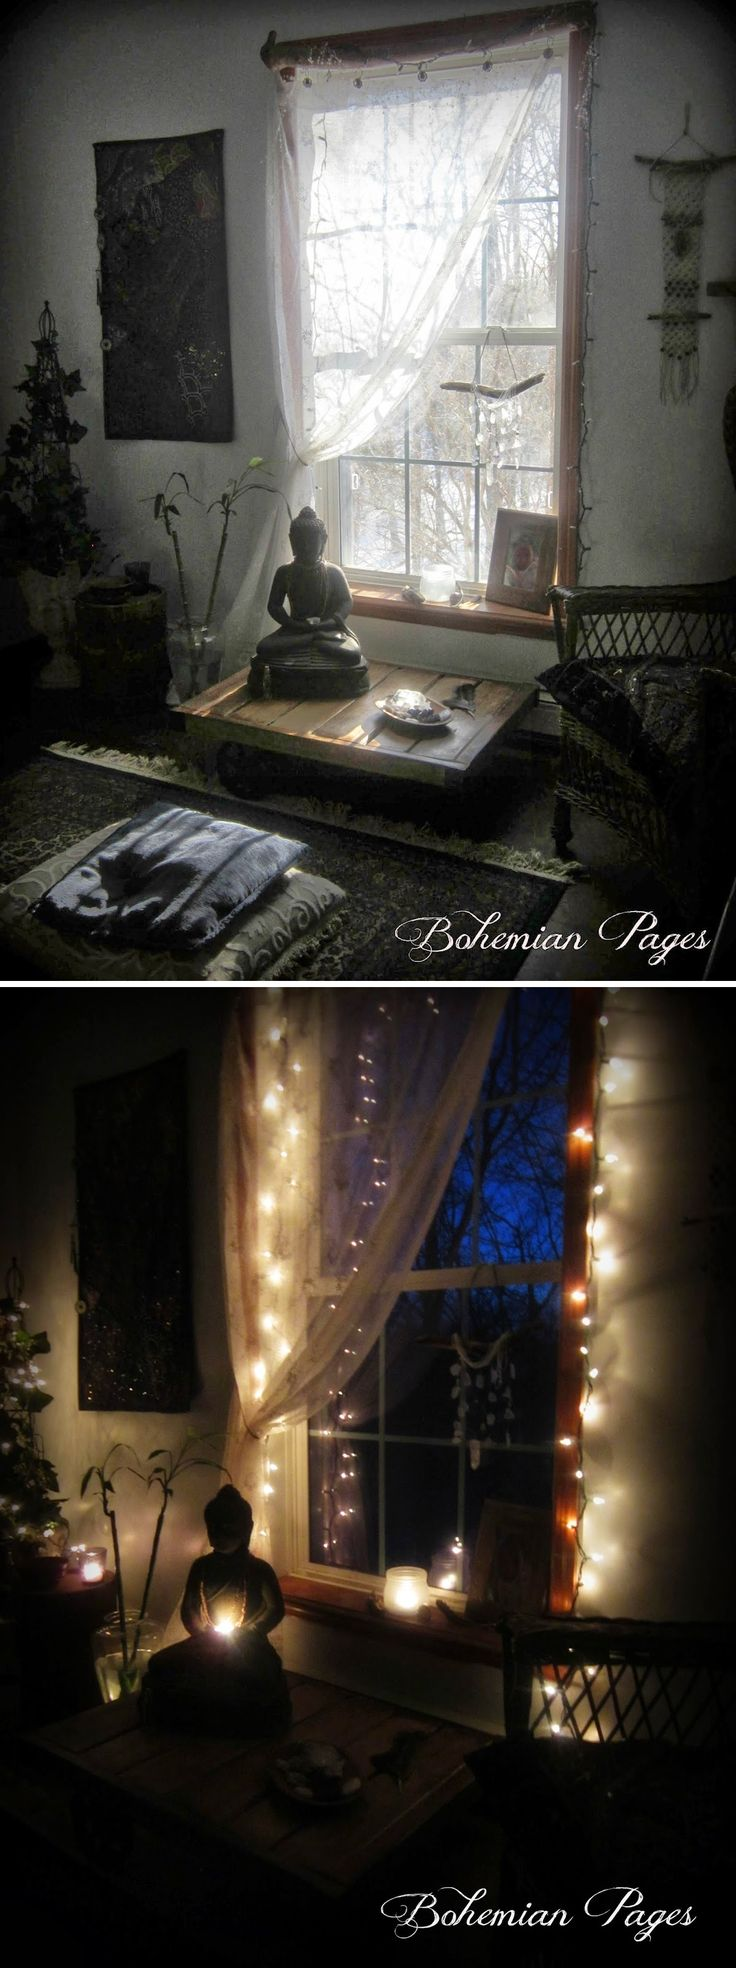 A beautiful & serene meditation space by Linda of Bohemian Pages